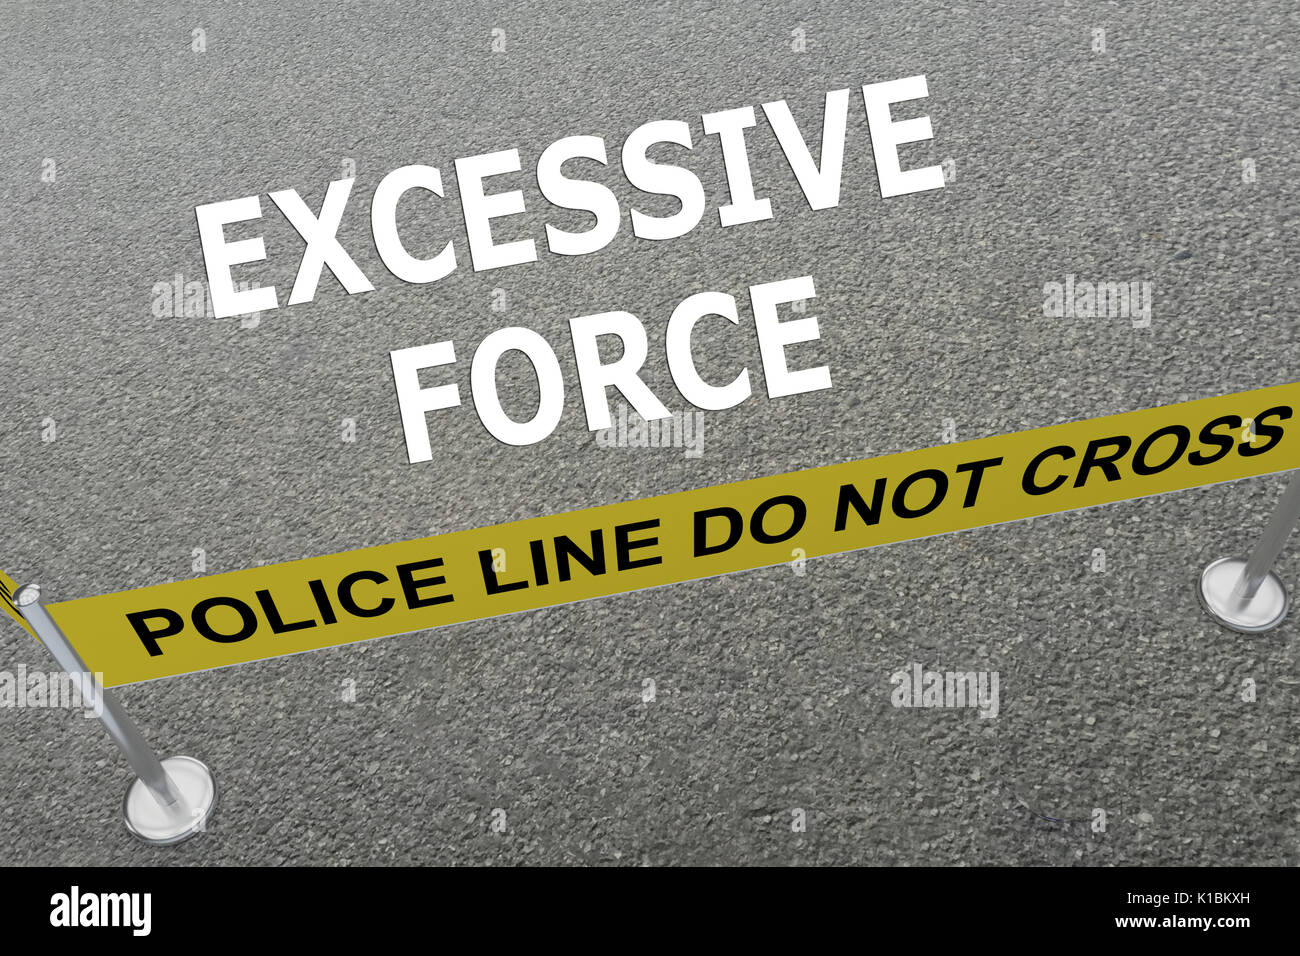 Render illustration of Excessive Force title on the ground in a police arena - Stock Image